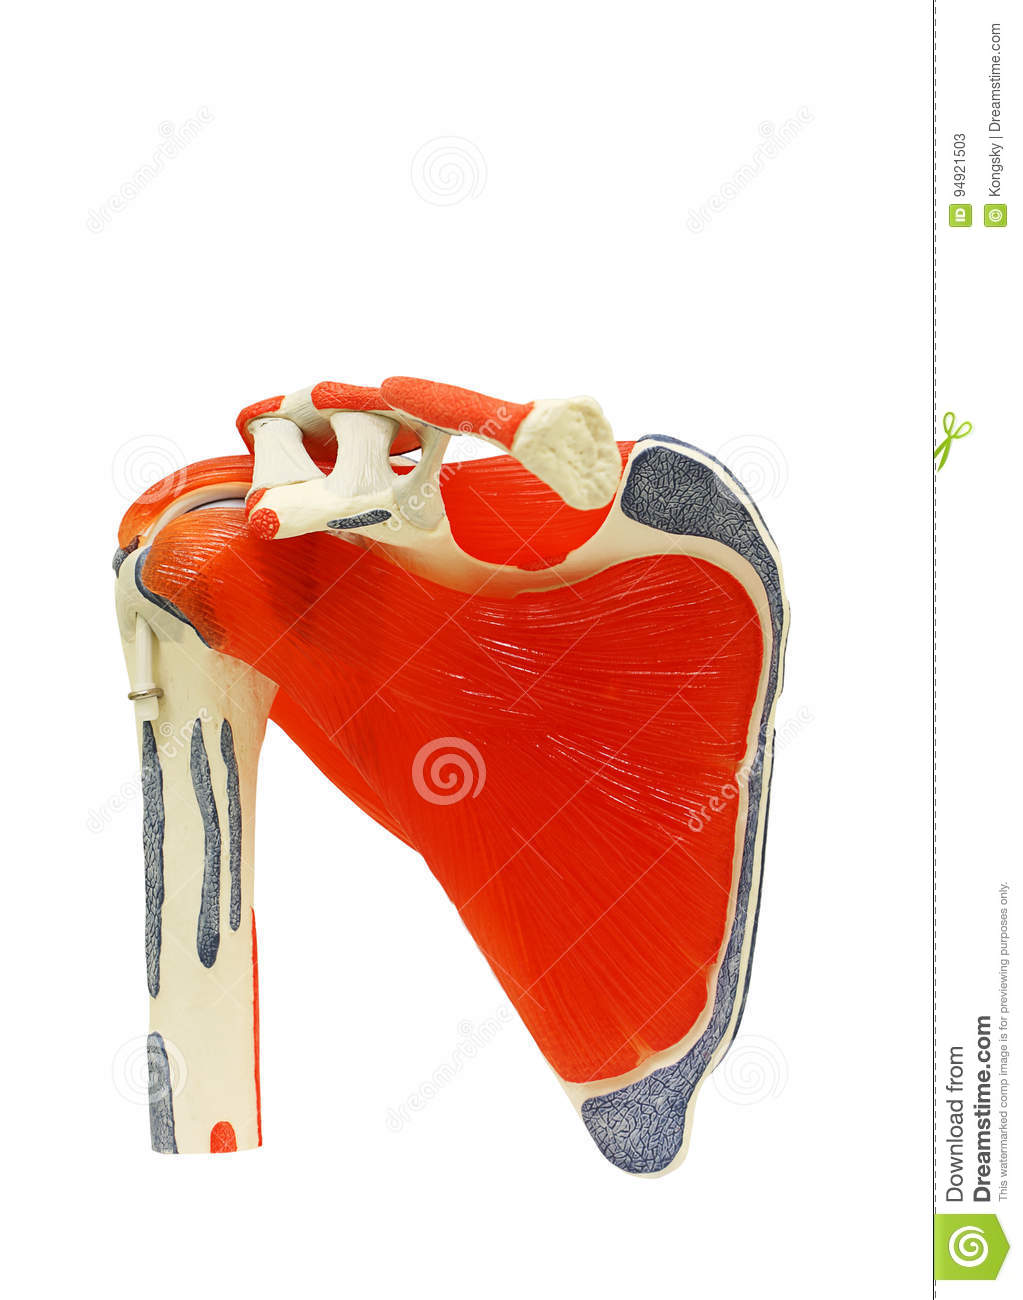 Shoulder anatomy joint isolated on white clipping path.